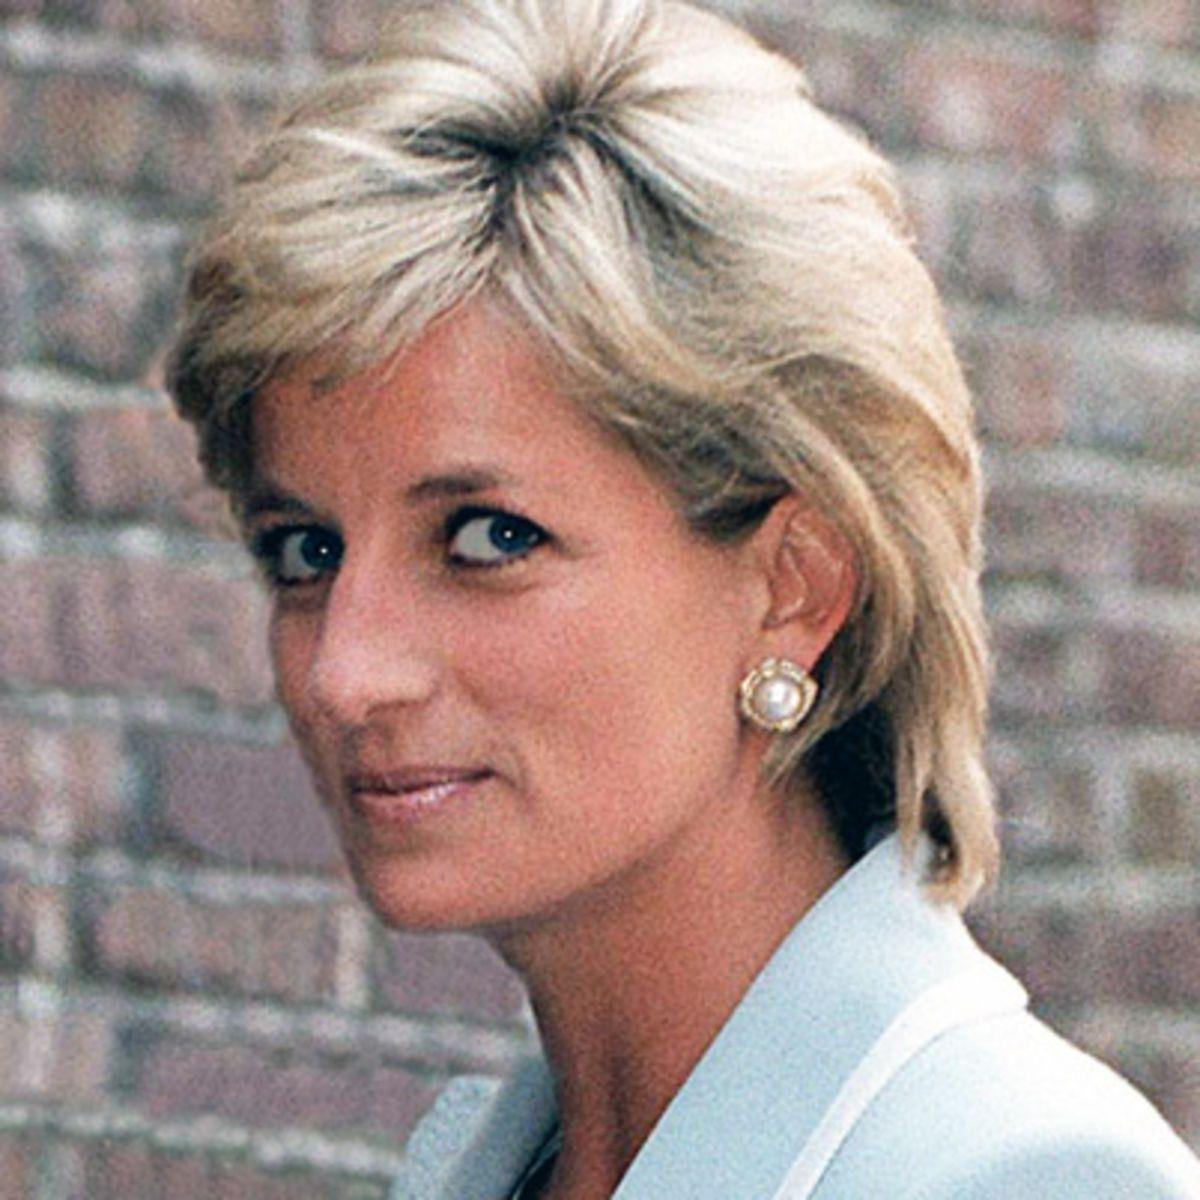 Princess Diana, Princess of Wales, was one of the most adored ...